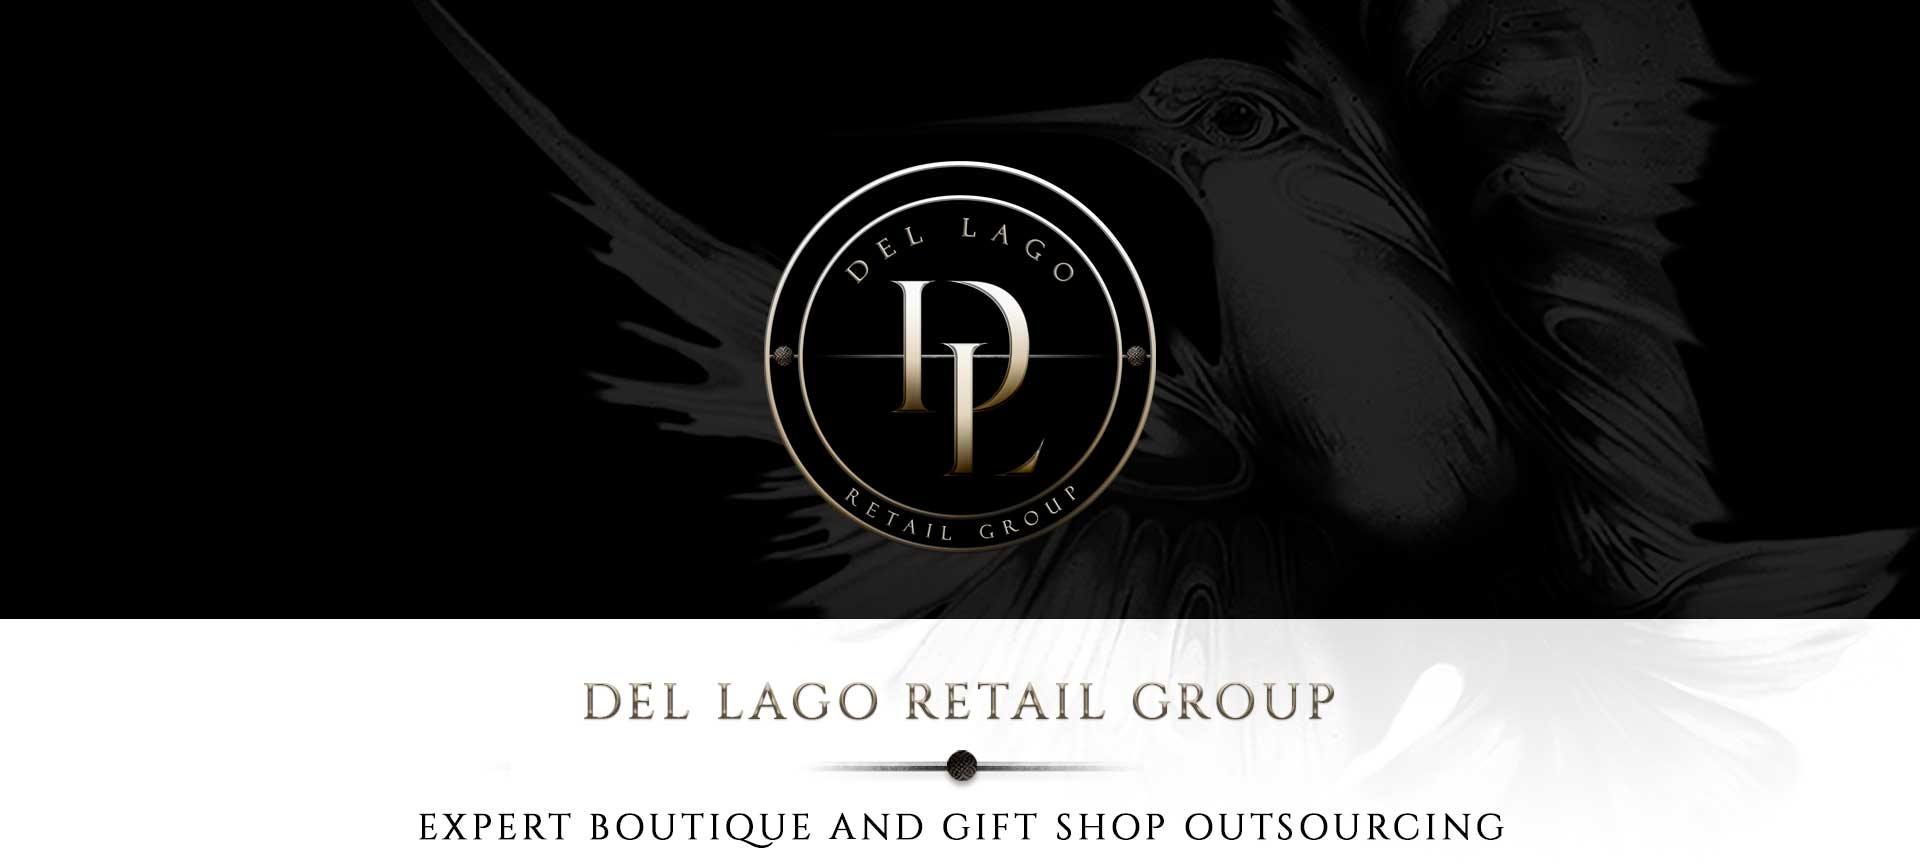 Del Lago Retail Group Logo